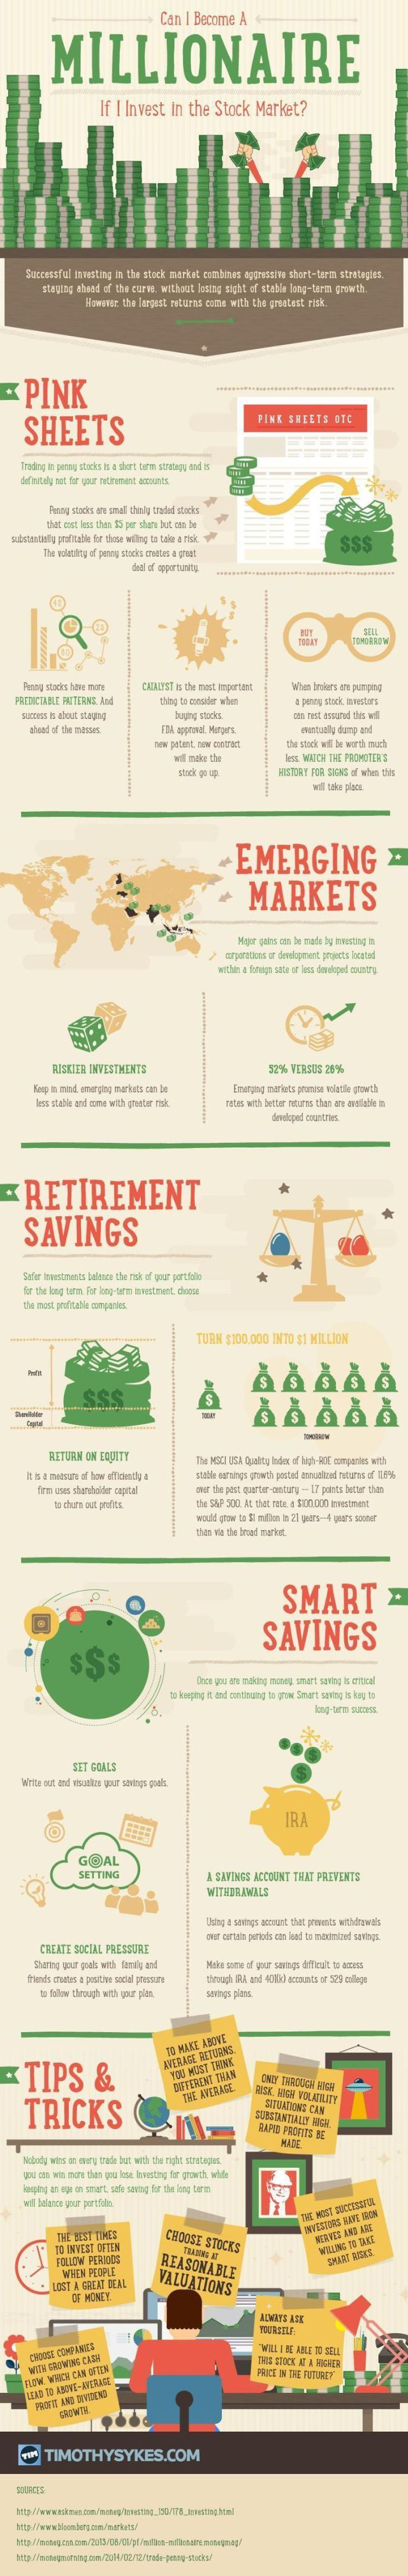 Trading infographic : Can I Become A Millionaire If I Invest In The Stock Market?     investing the ri